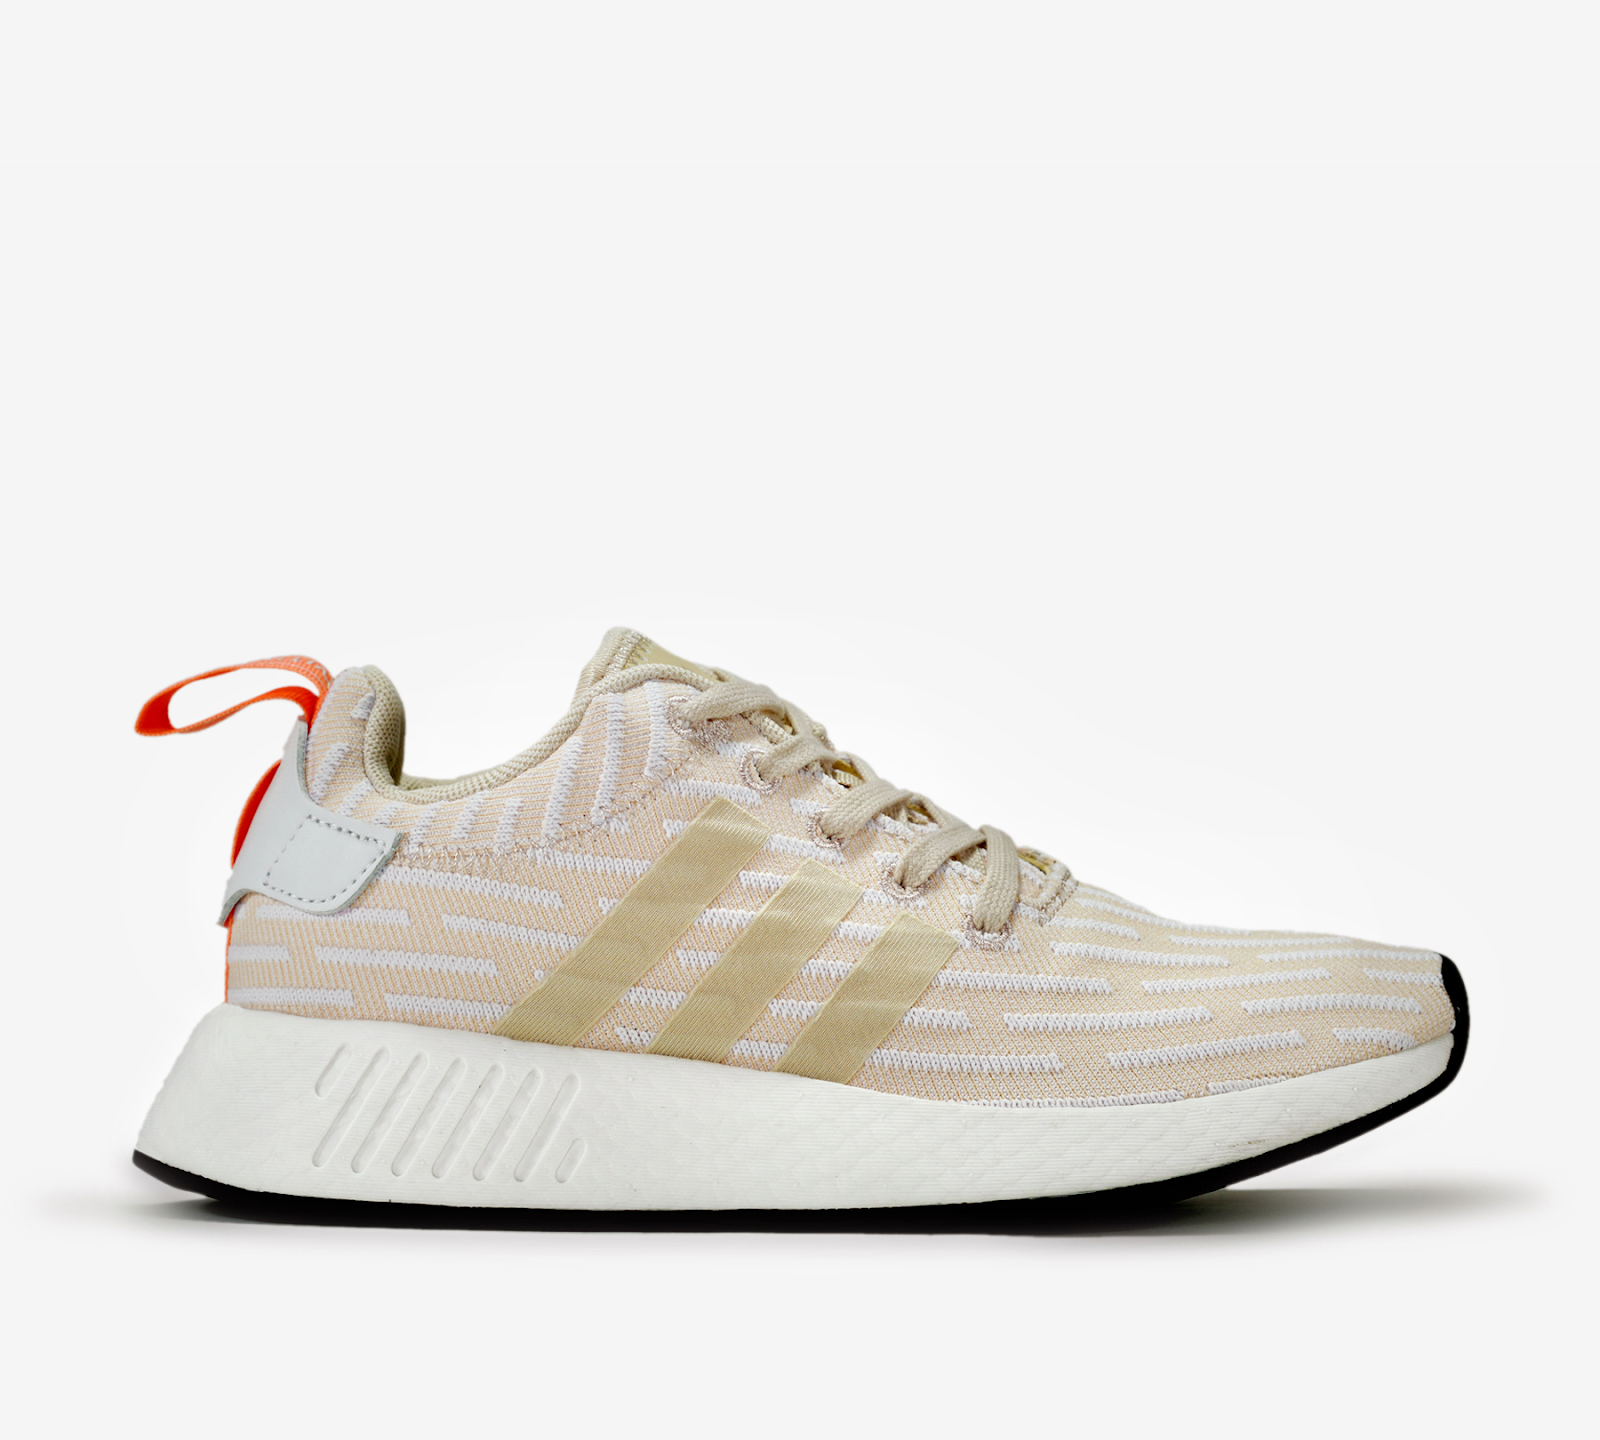 Nmd r2 nude core orange